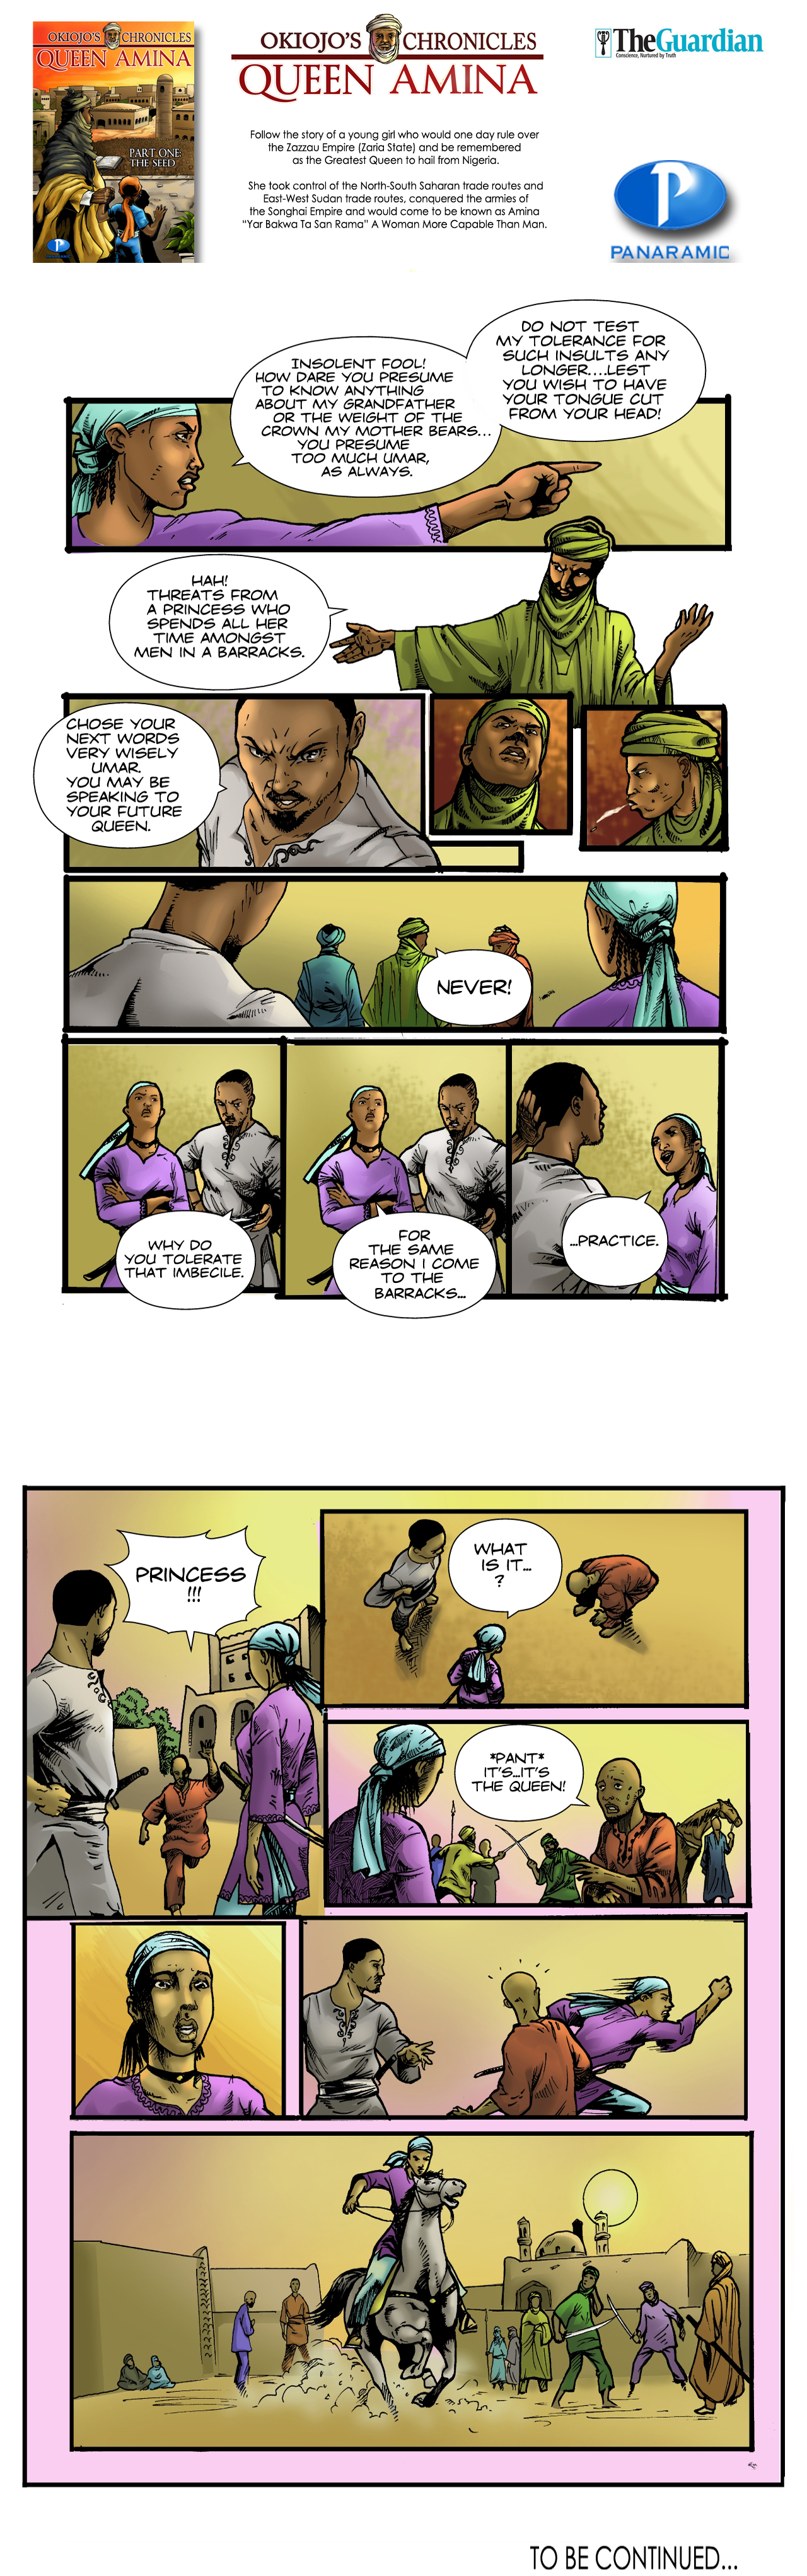 Queen Amina (Part 1) - 9